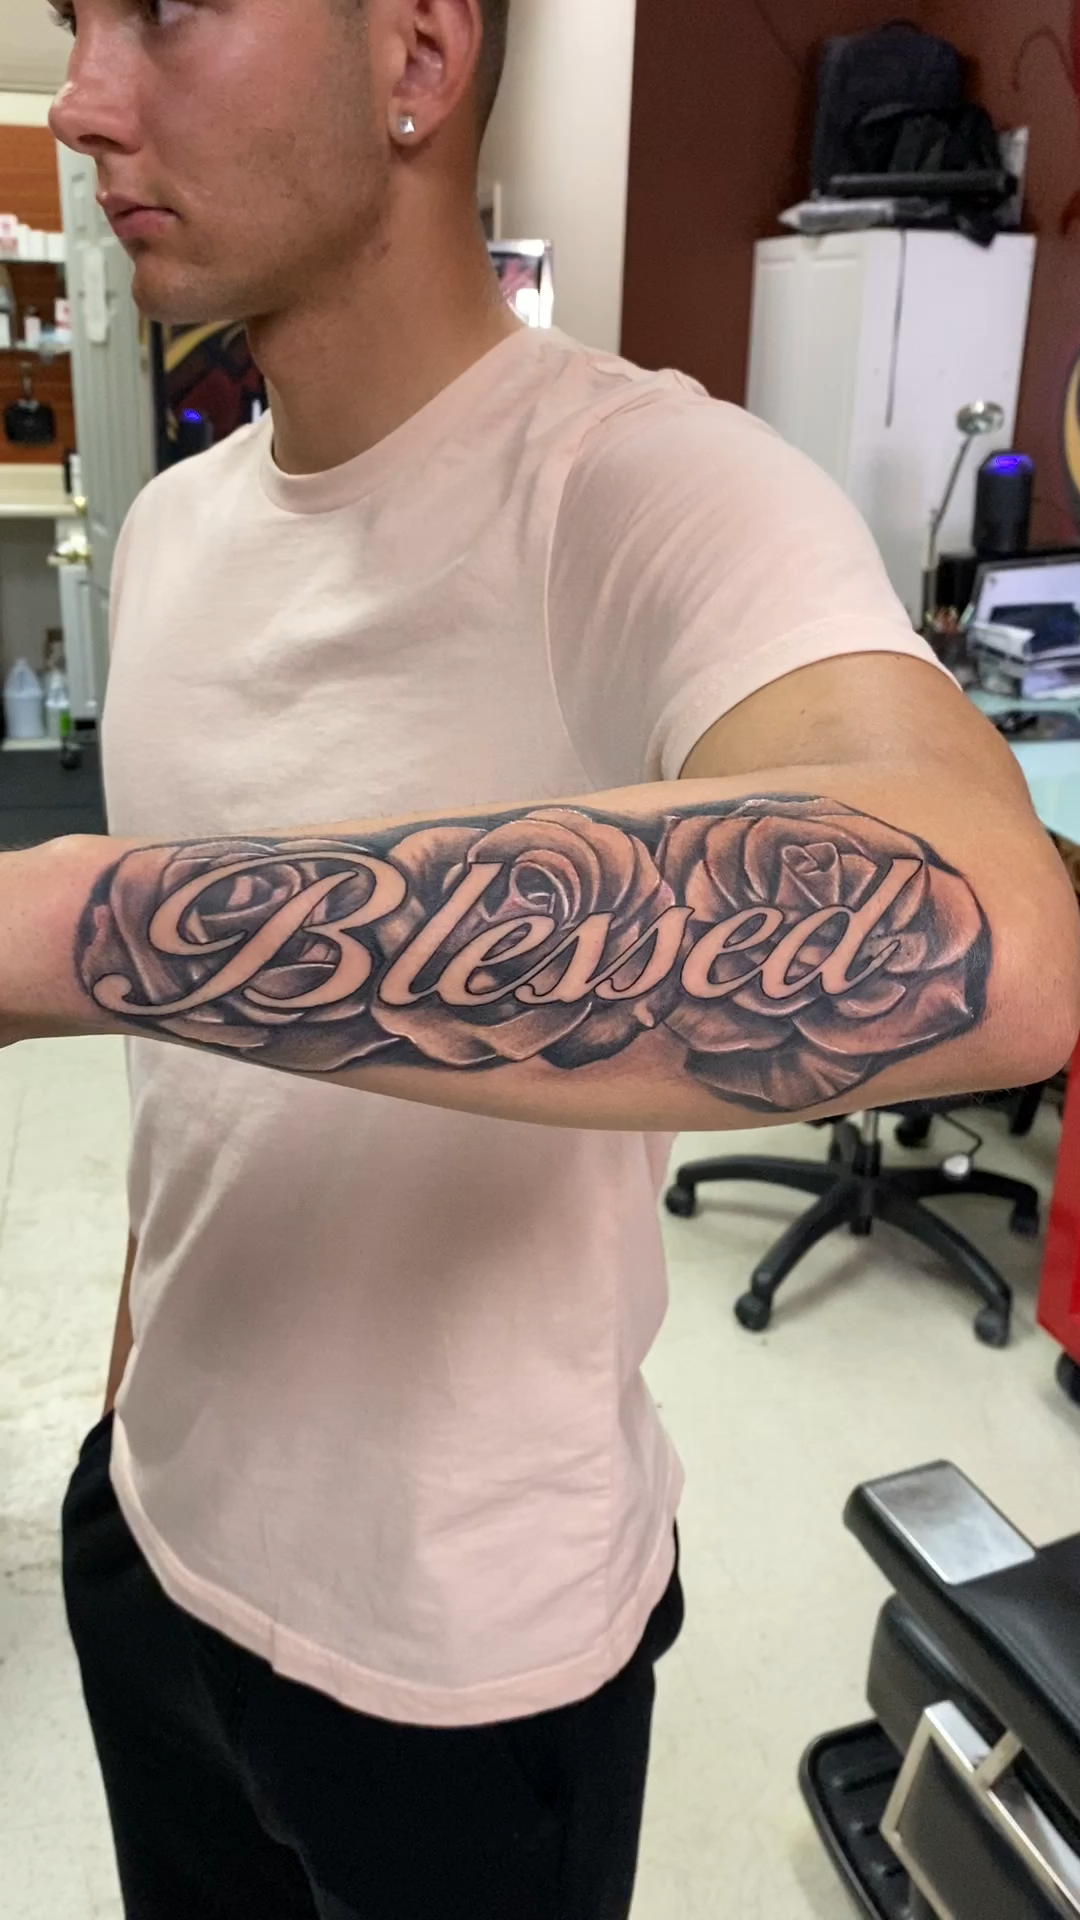 Blessed with Roses Tattoo